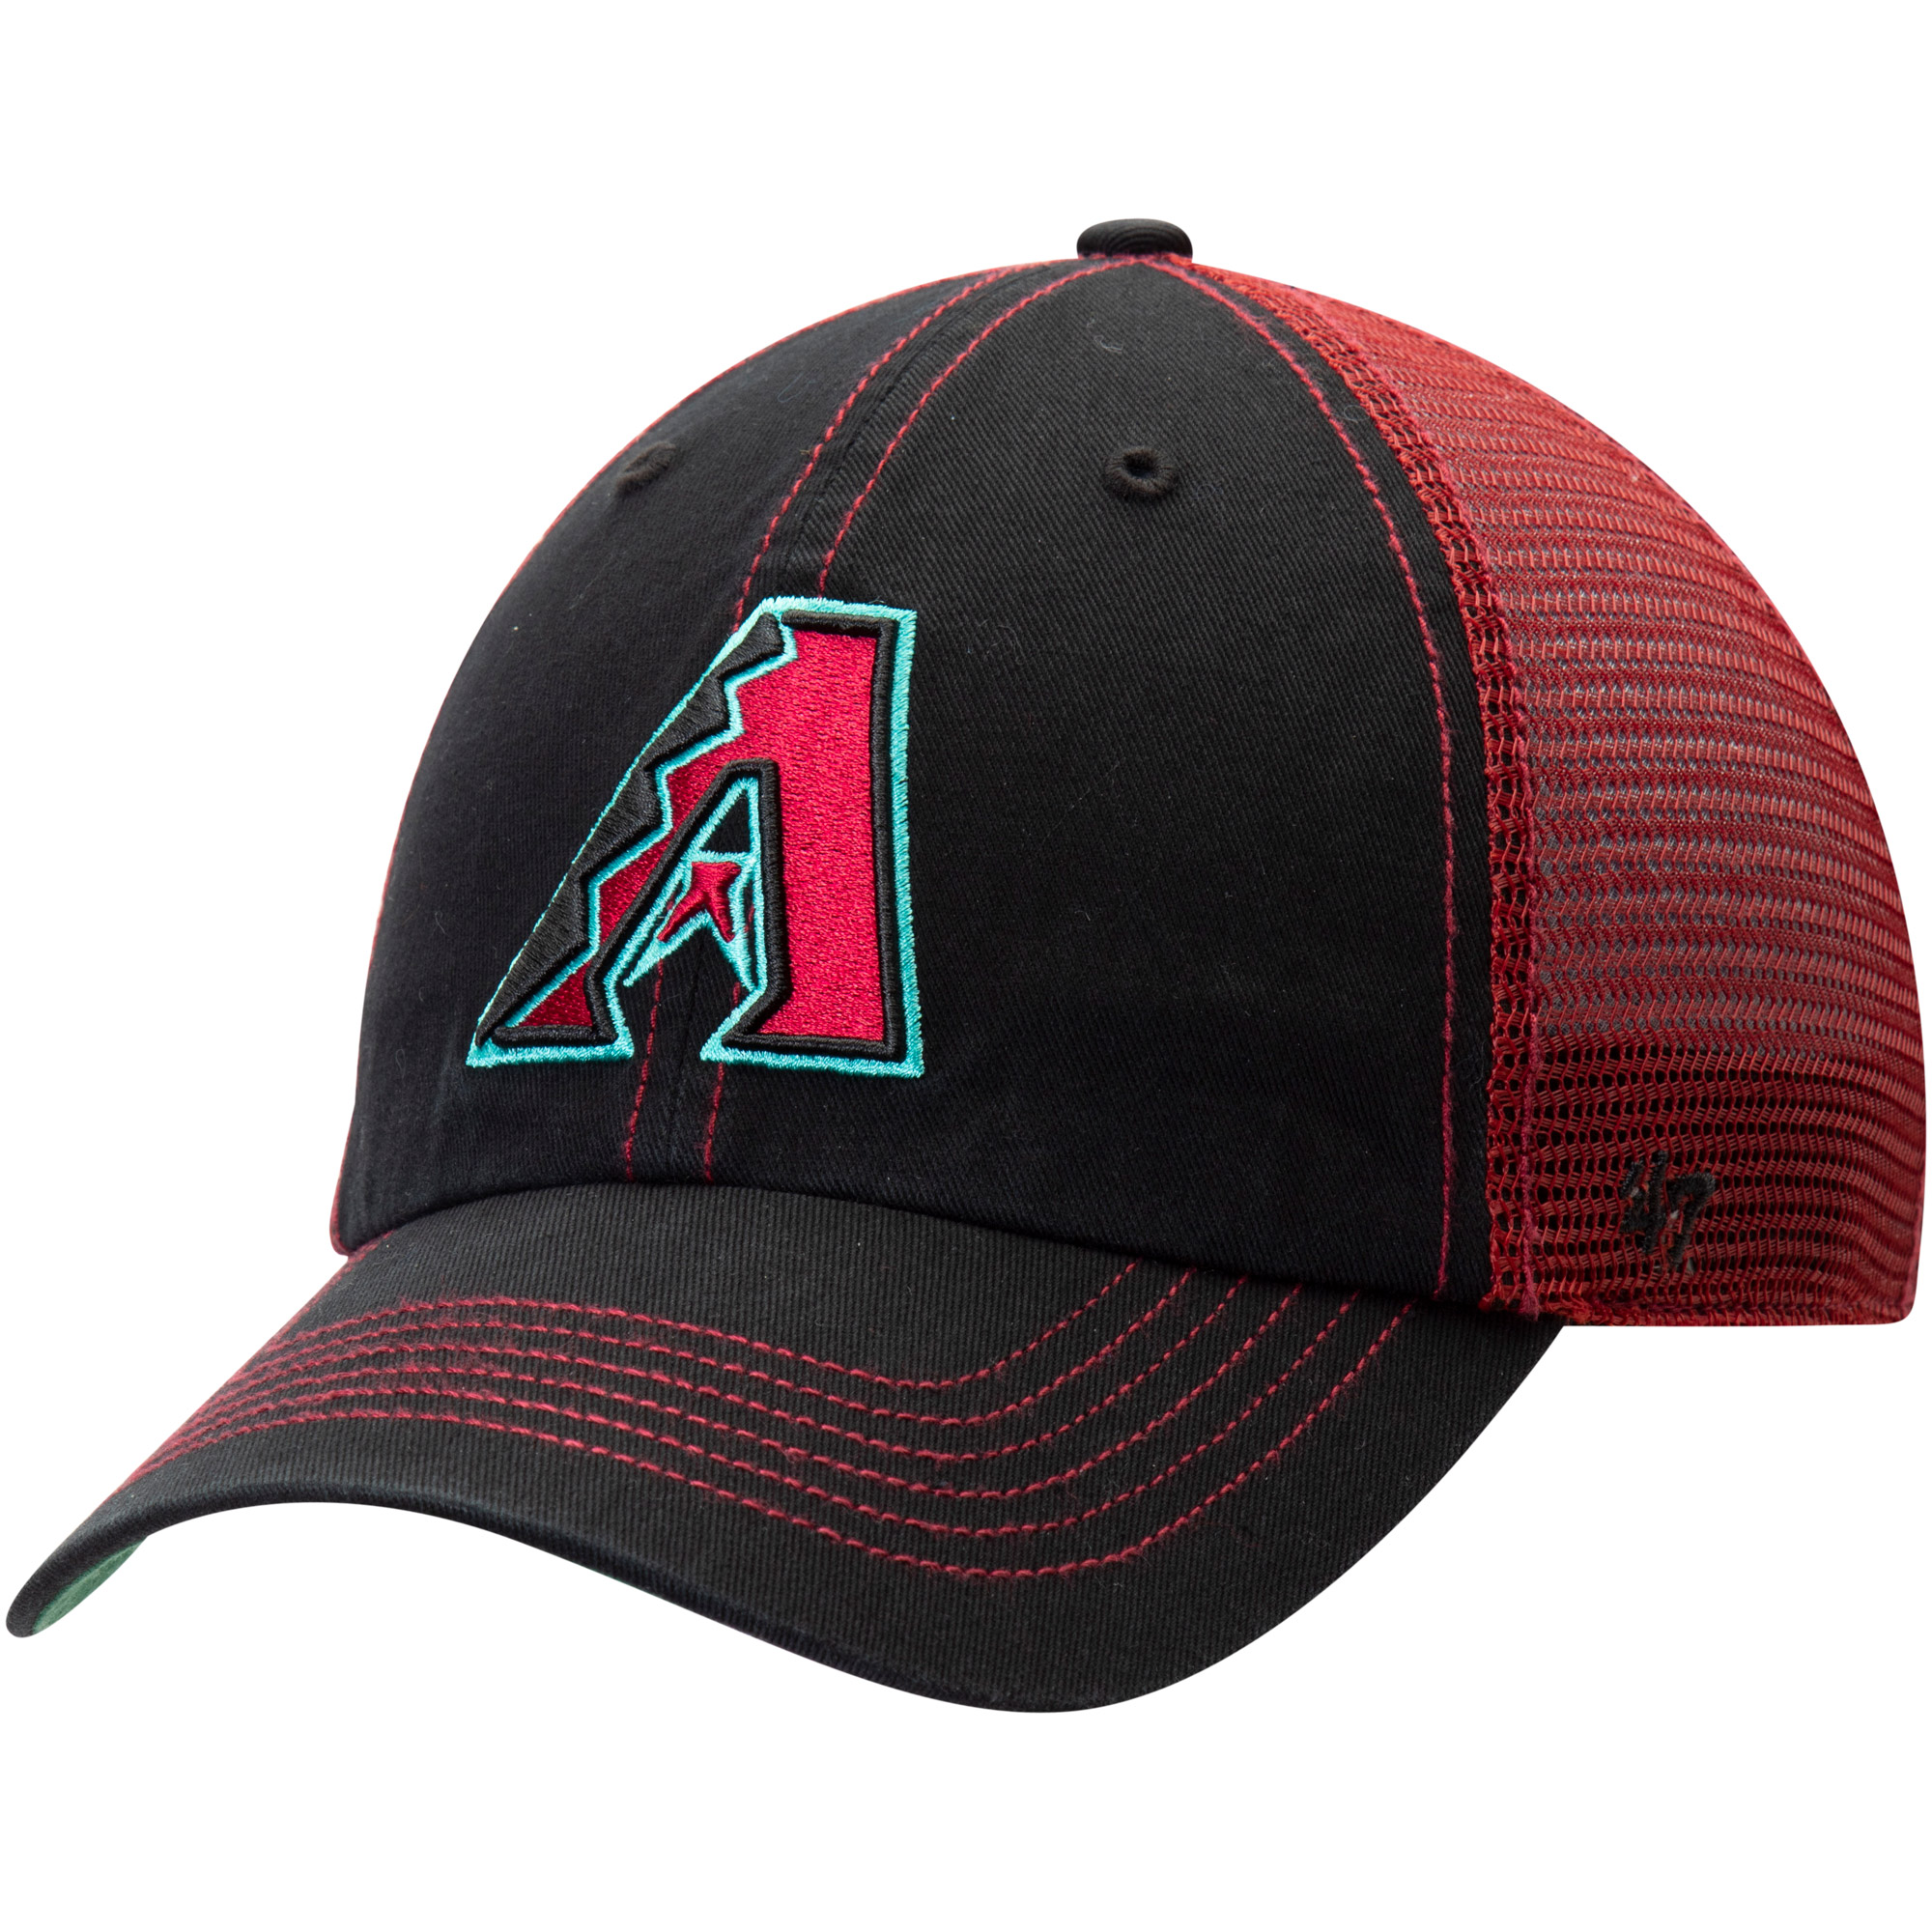 Arizona Diamondbacks '47 Trawler Clean Up Trucker Hat - Black - OSFA